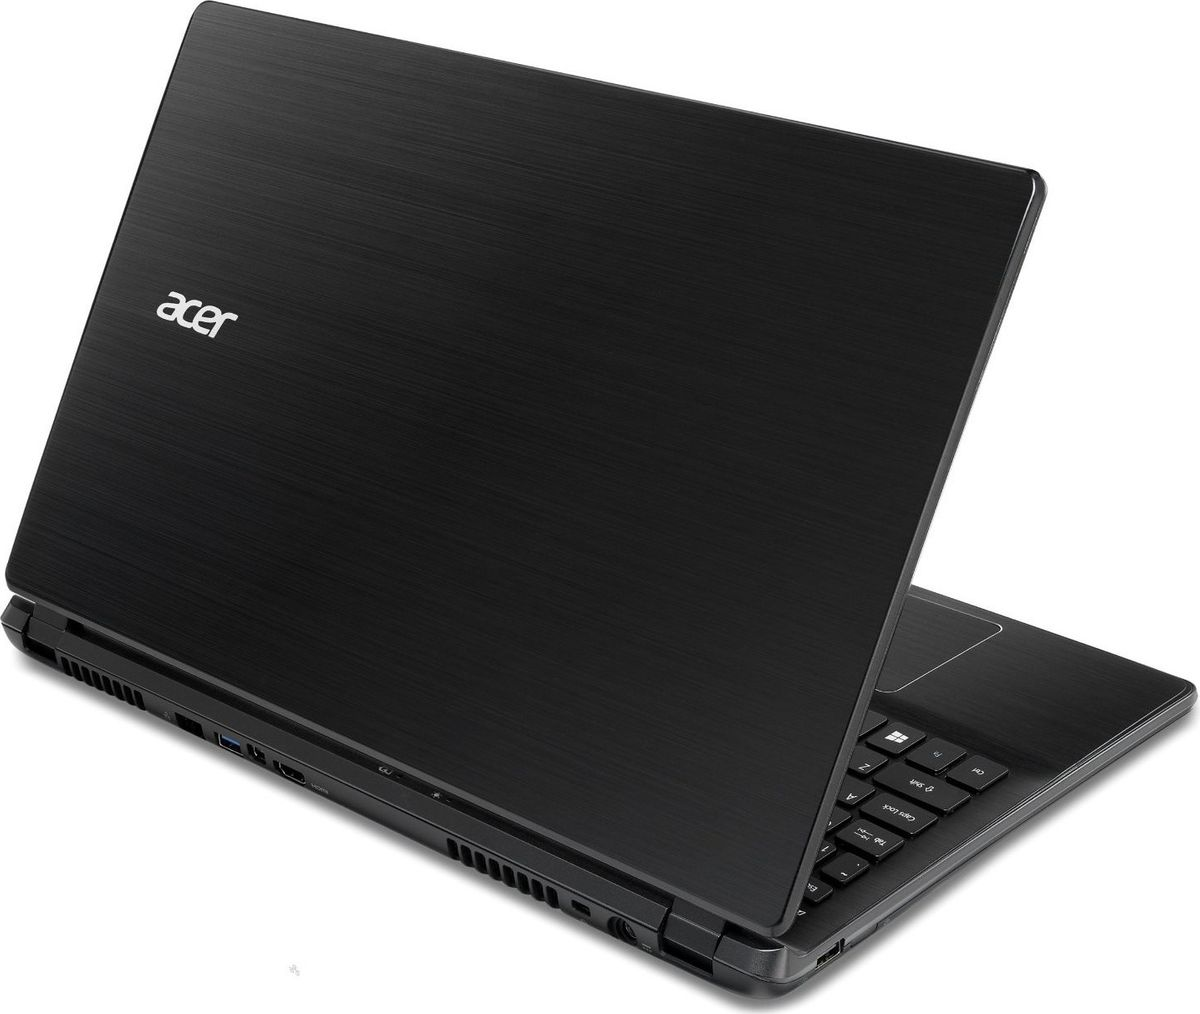 ACER ASPIRE V5-573G LAPTOP DRIVERS DOWNLOAD